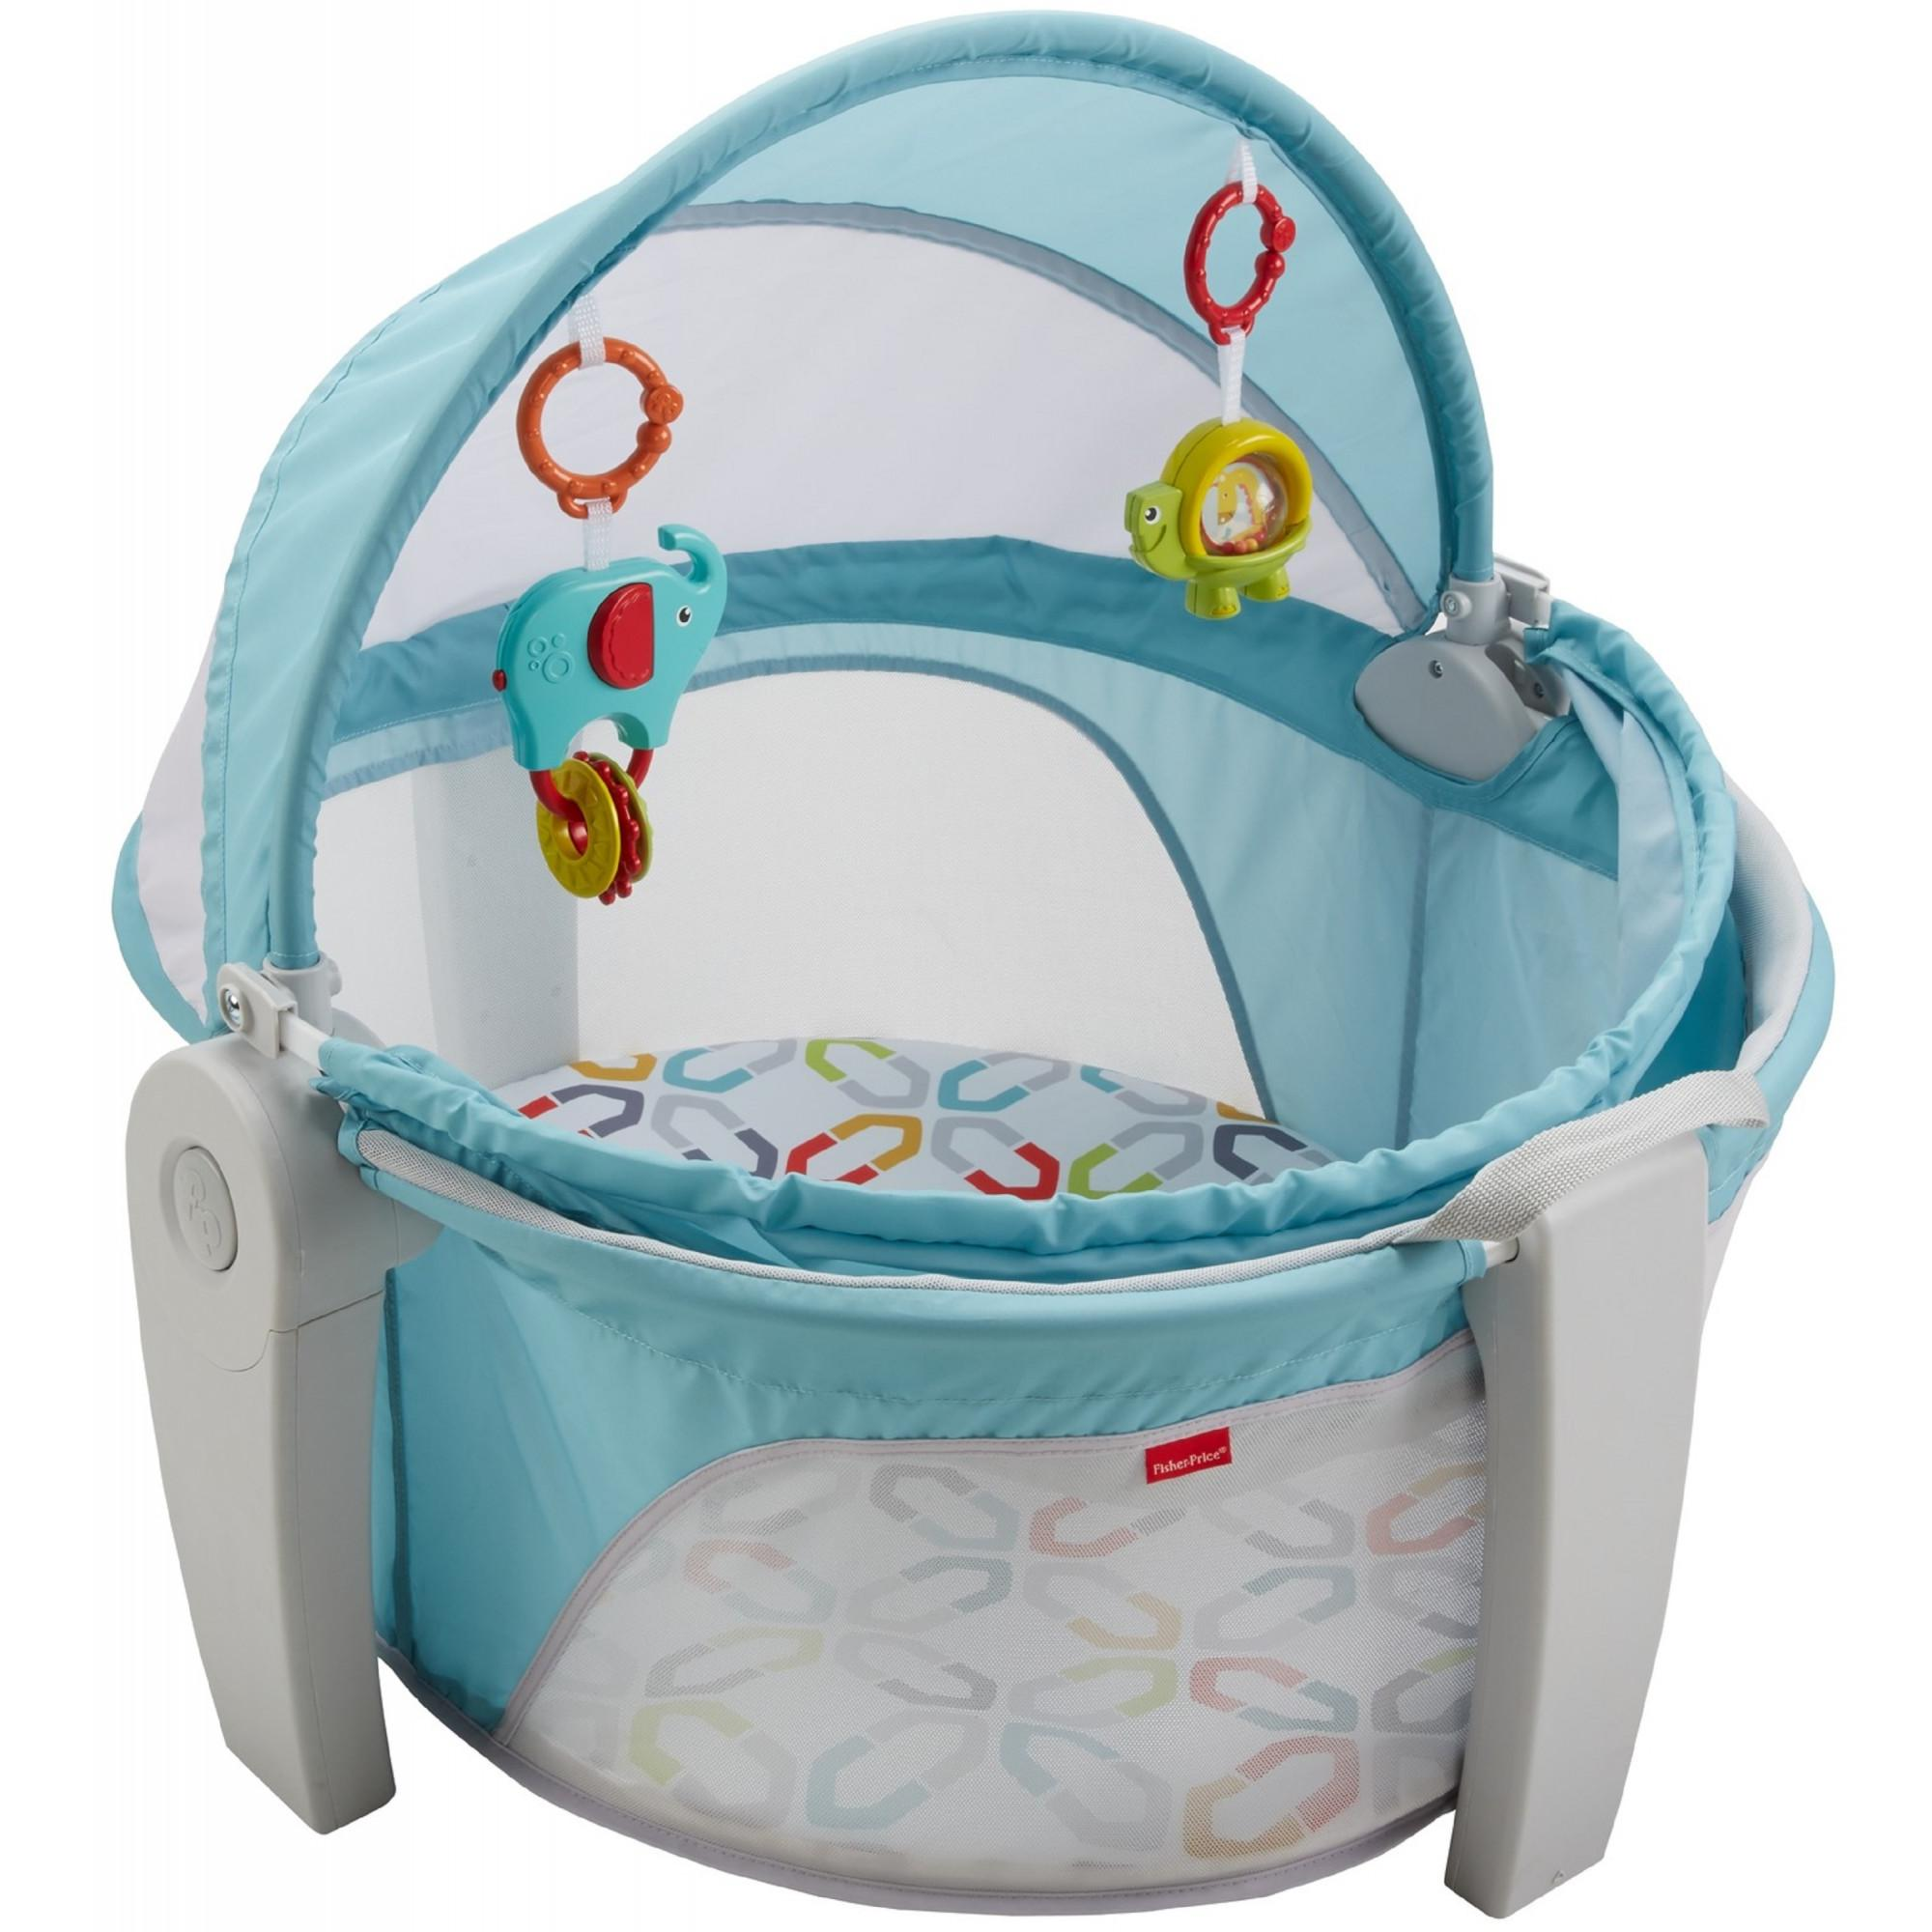 Fisher Price On-the-Go Baby Dome by Fisher-Price